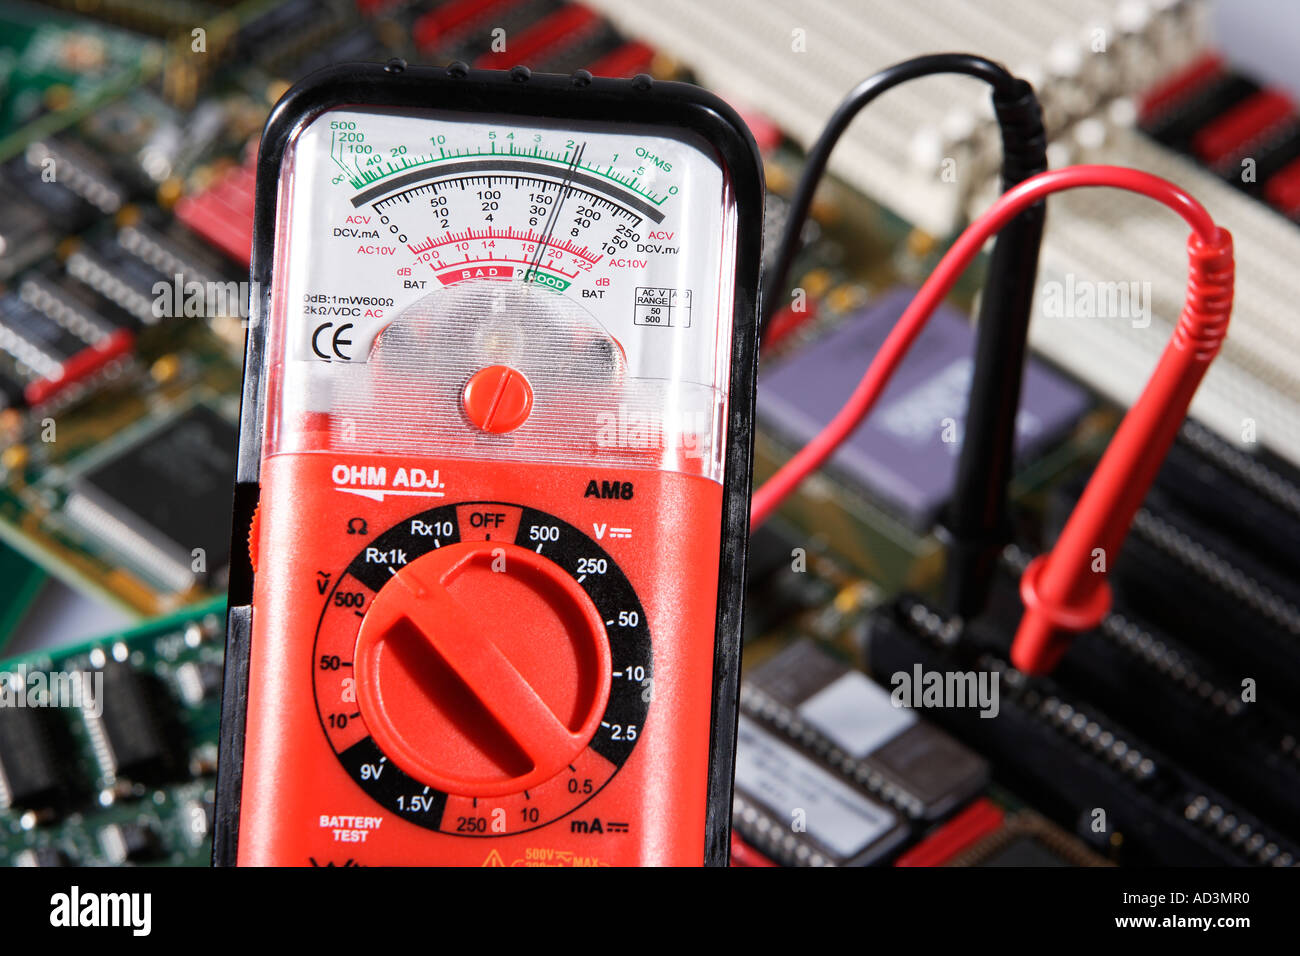 Analog Multimeter - Stock Image